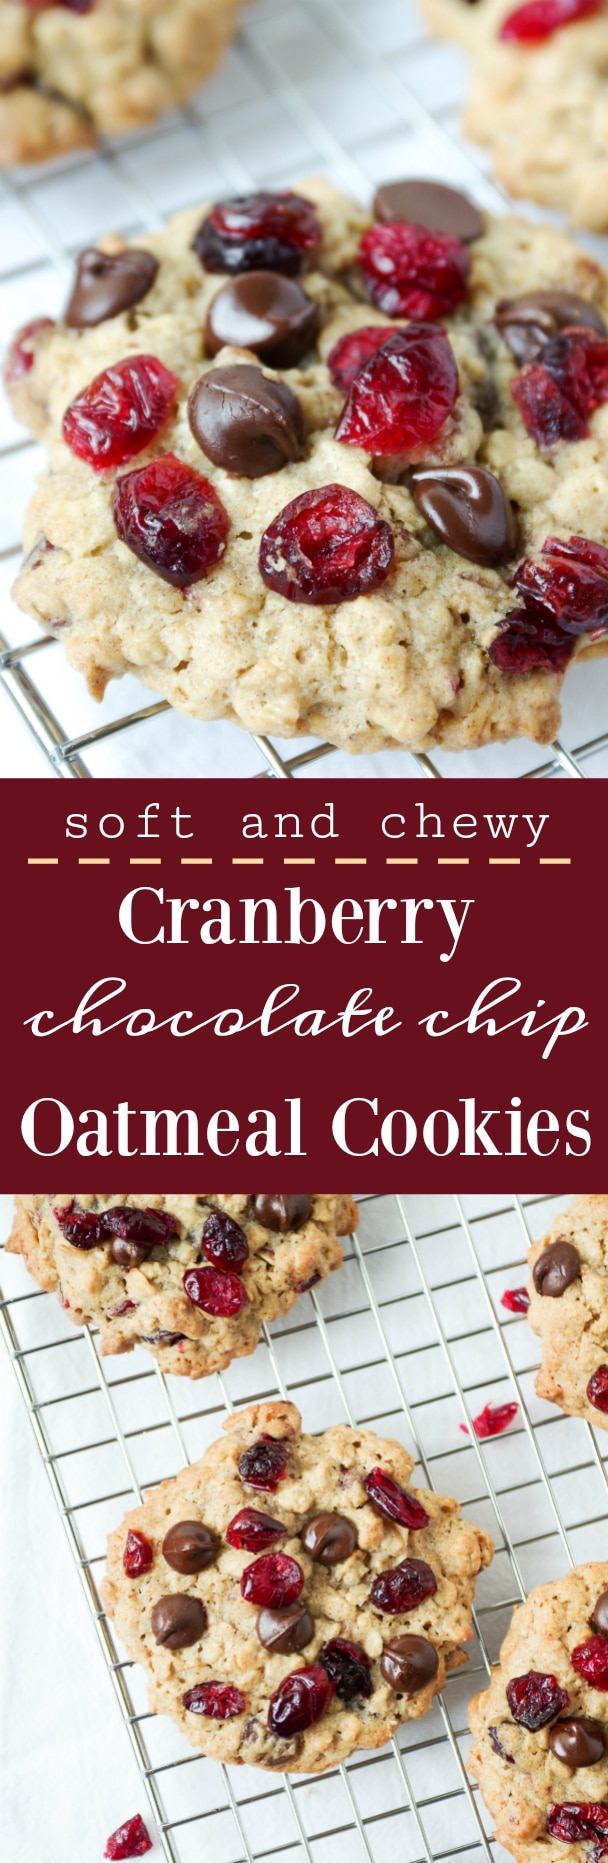 Soft and Chewy Cranberry Chocolate Chip Oatmeal Cookies via @theforkedspoon